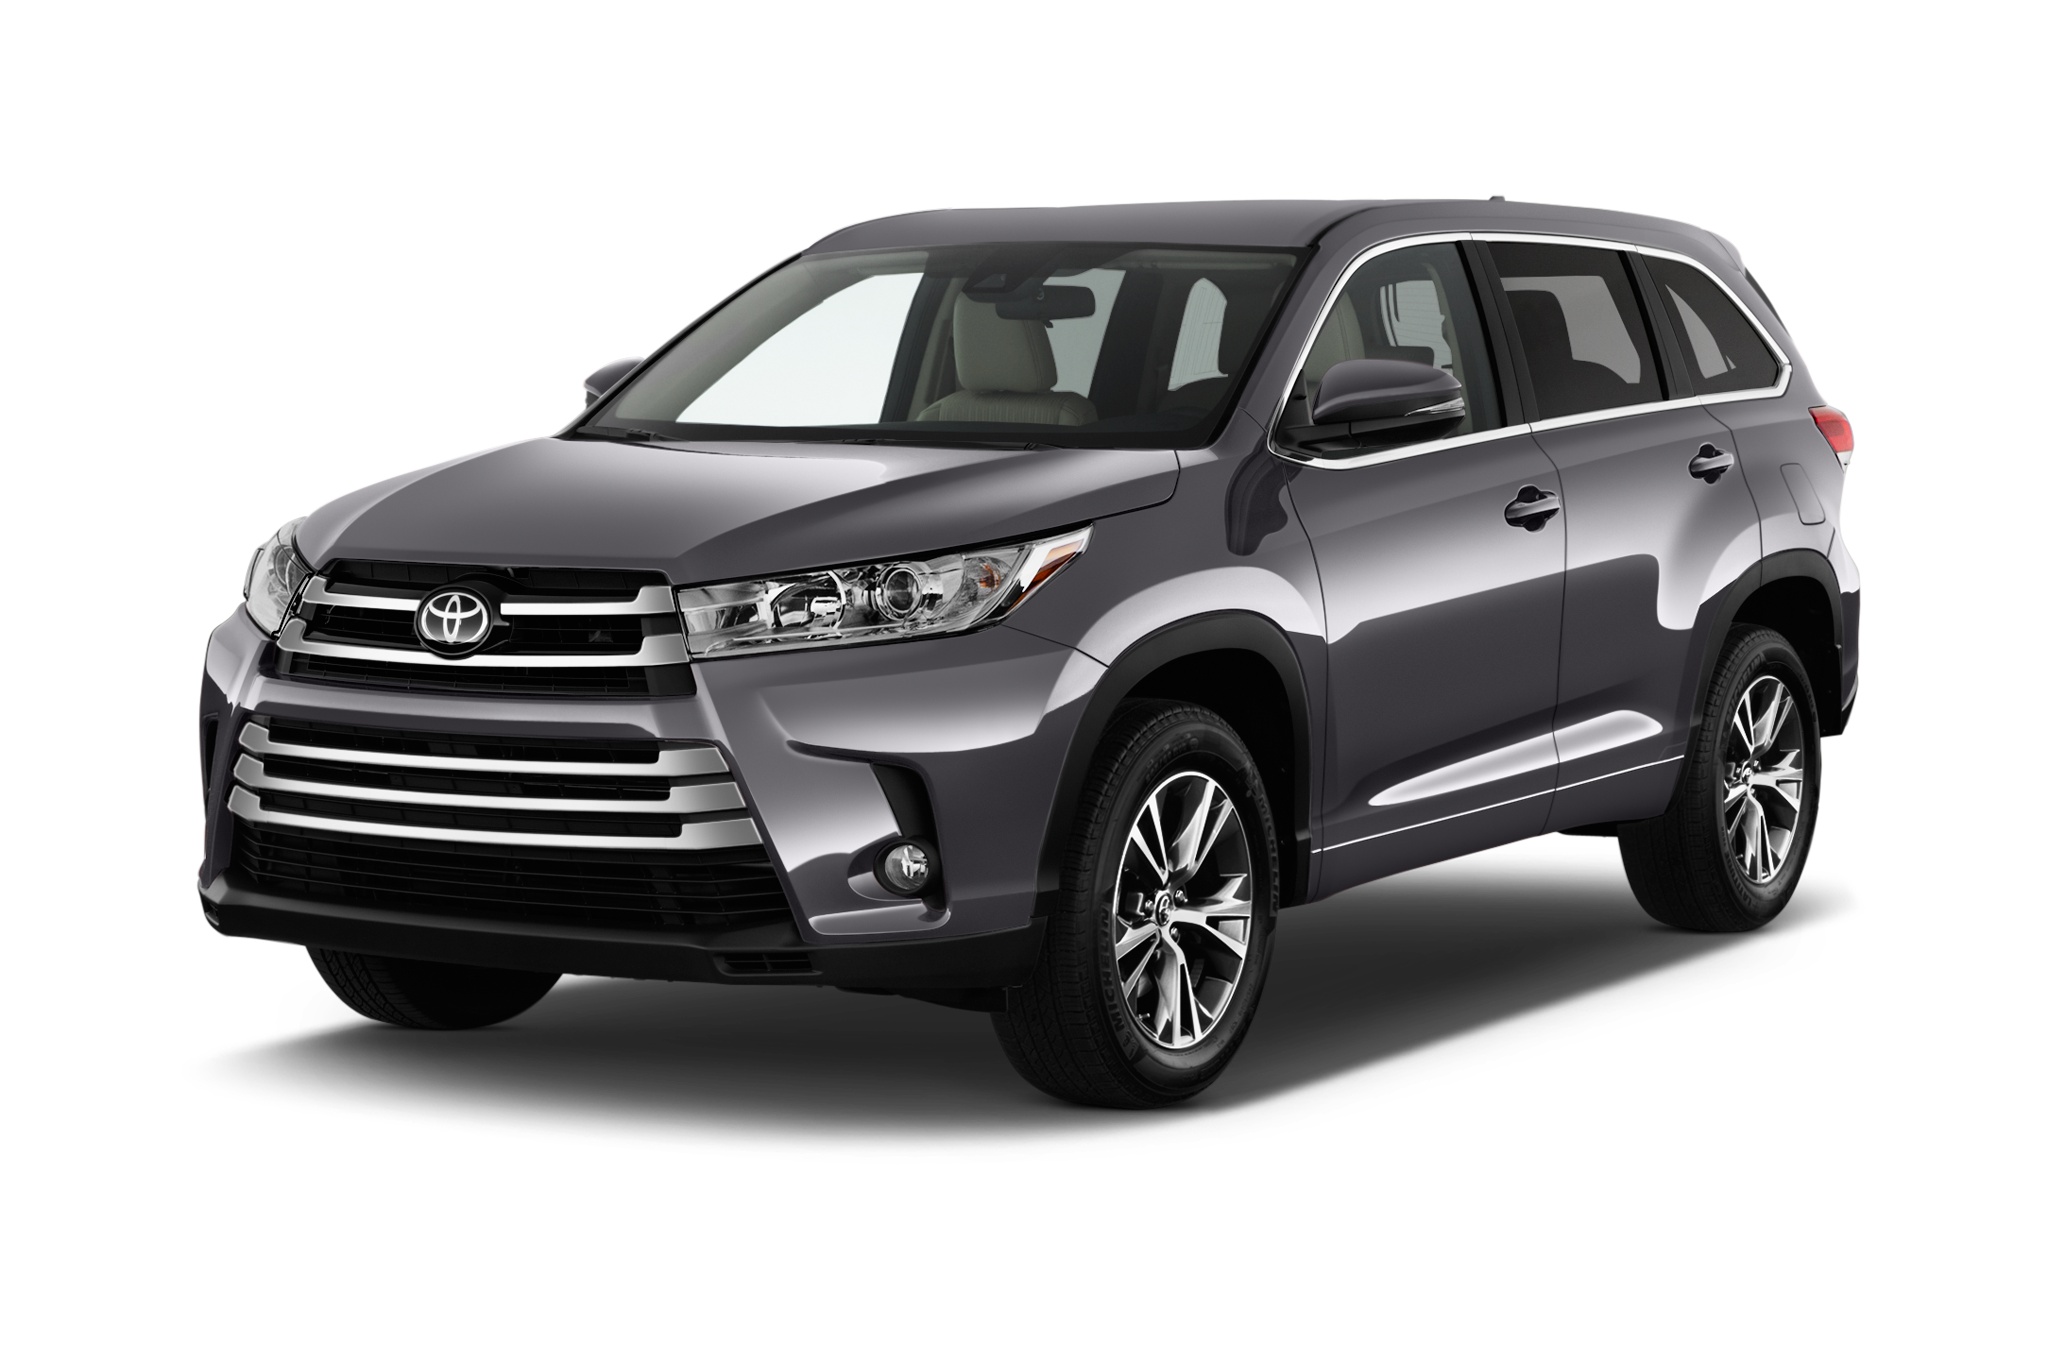 2018 toyota highlander le awd specs and features msn autos. Black Bedroom Furniture Sets. Home Design Ideas